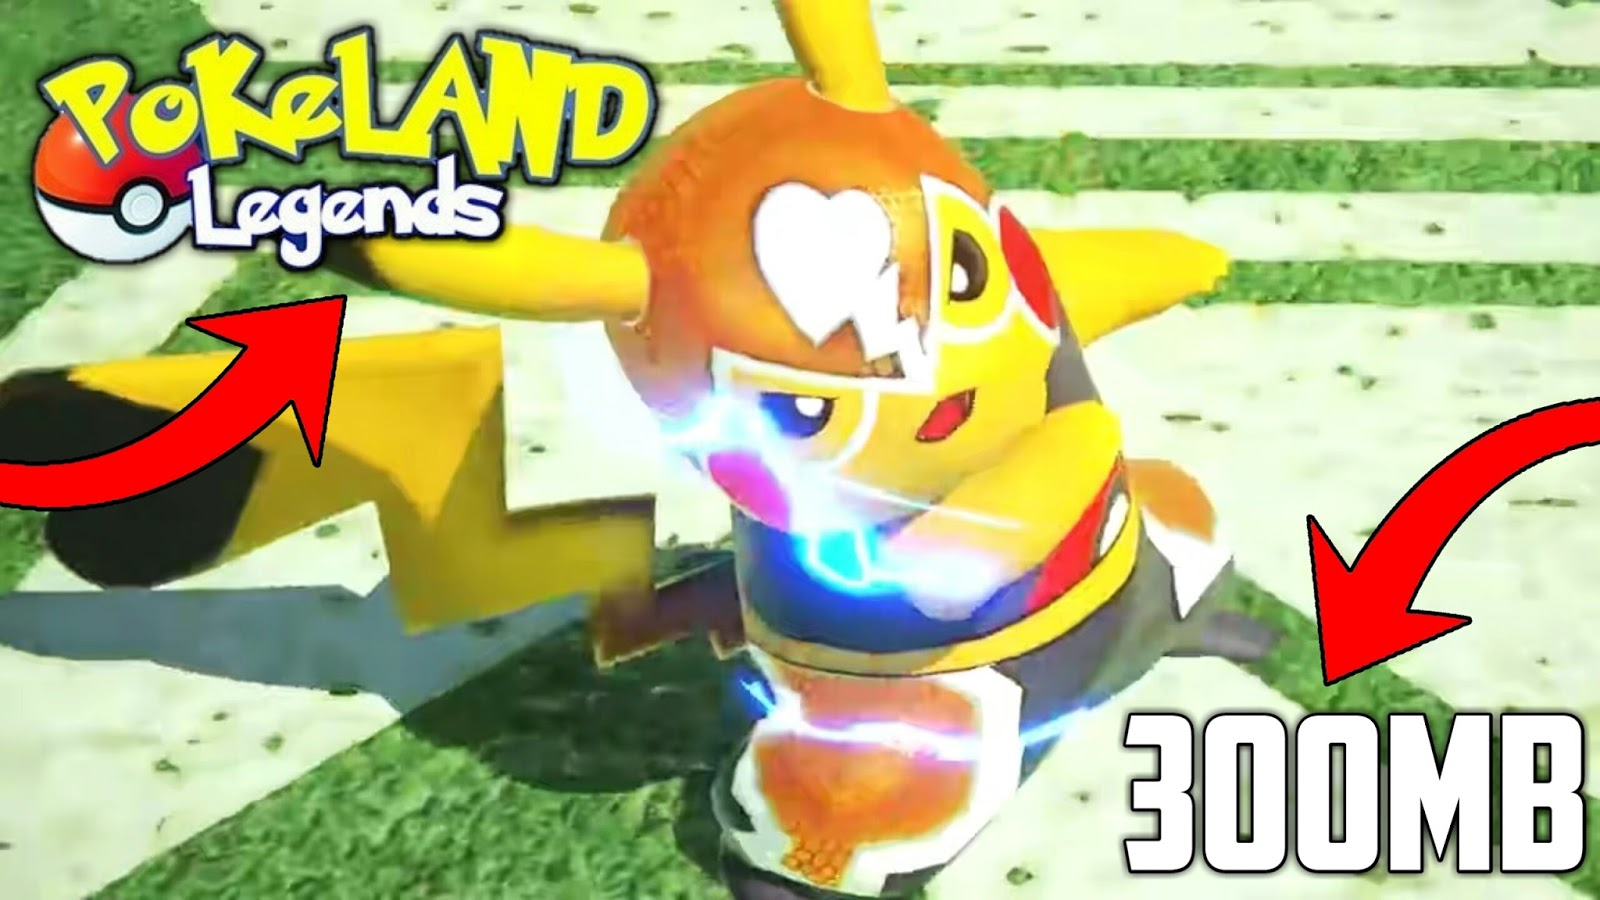 POKELAND LEGENDS APK LATEST VERSION (300MB) - Android Game7 | Free